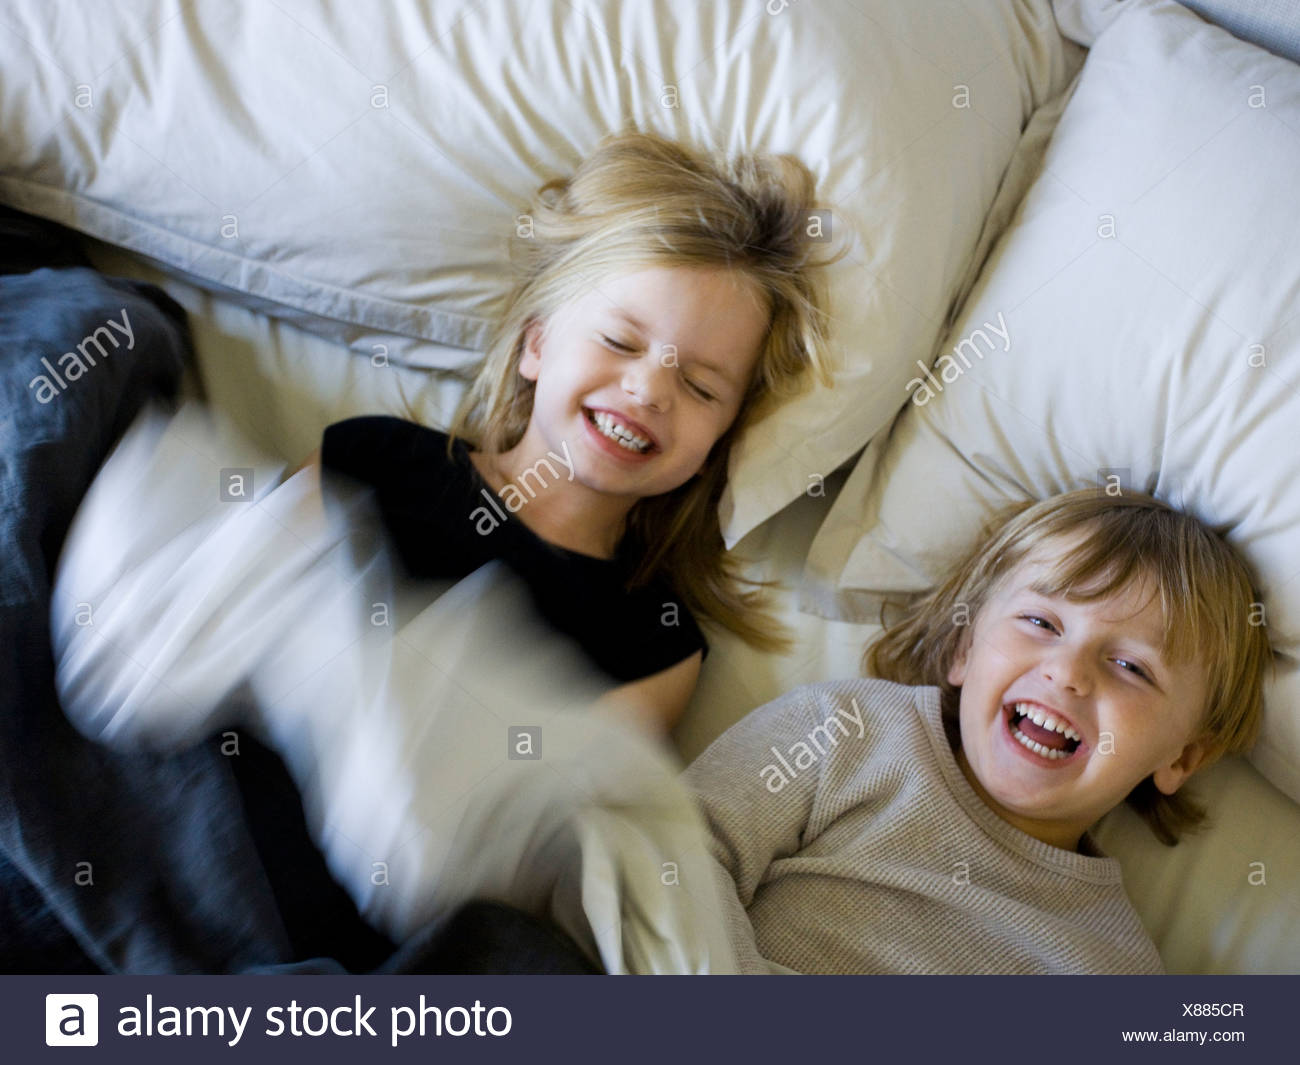 USA, Utah, Provo, Brother and sister (2-5) playing in bed - Stock Image